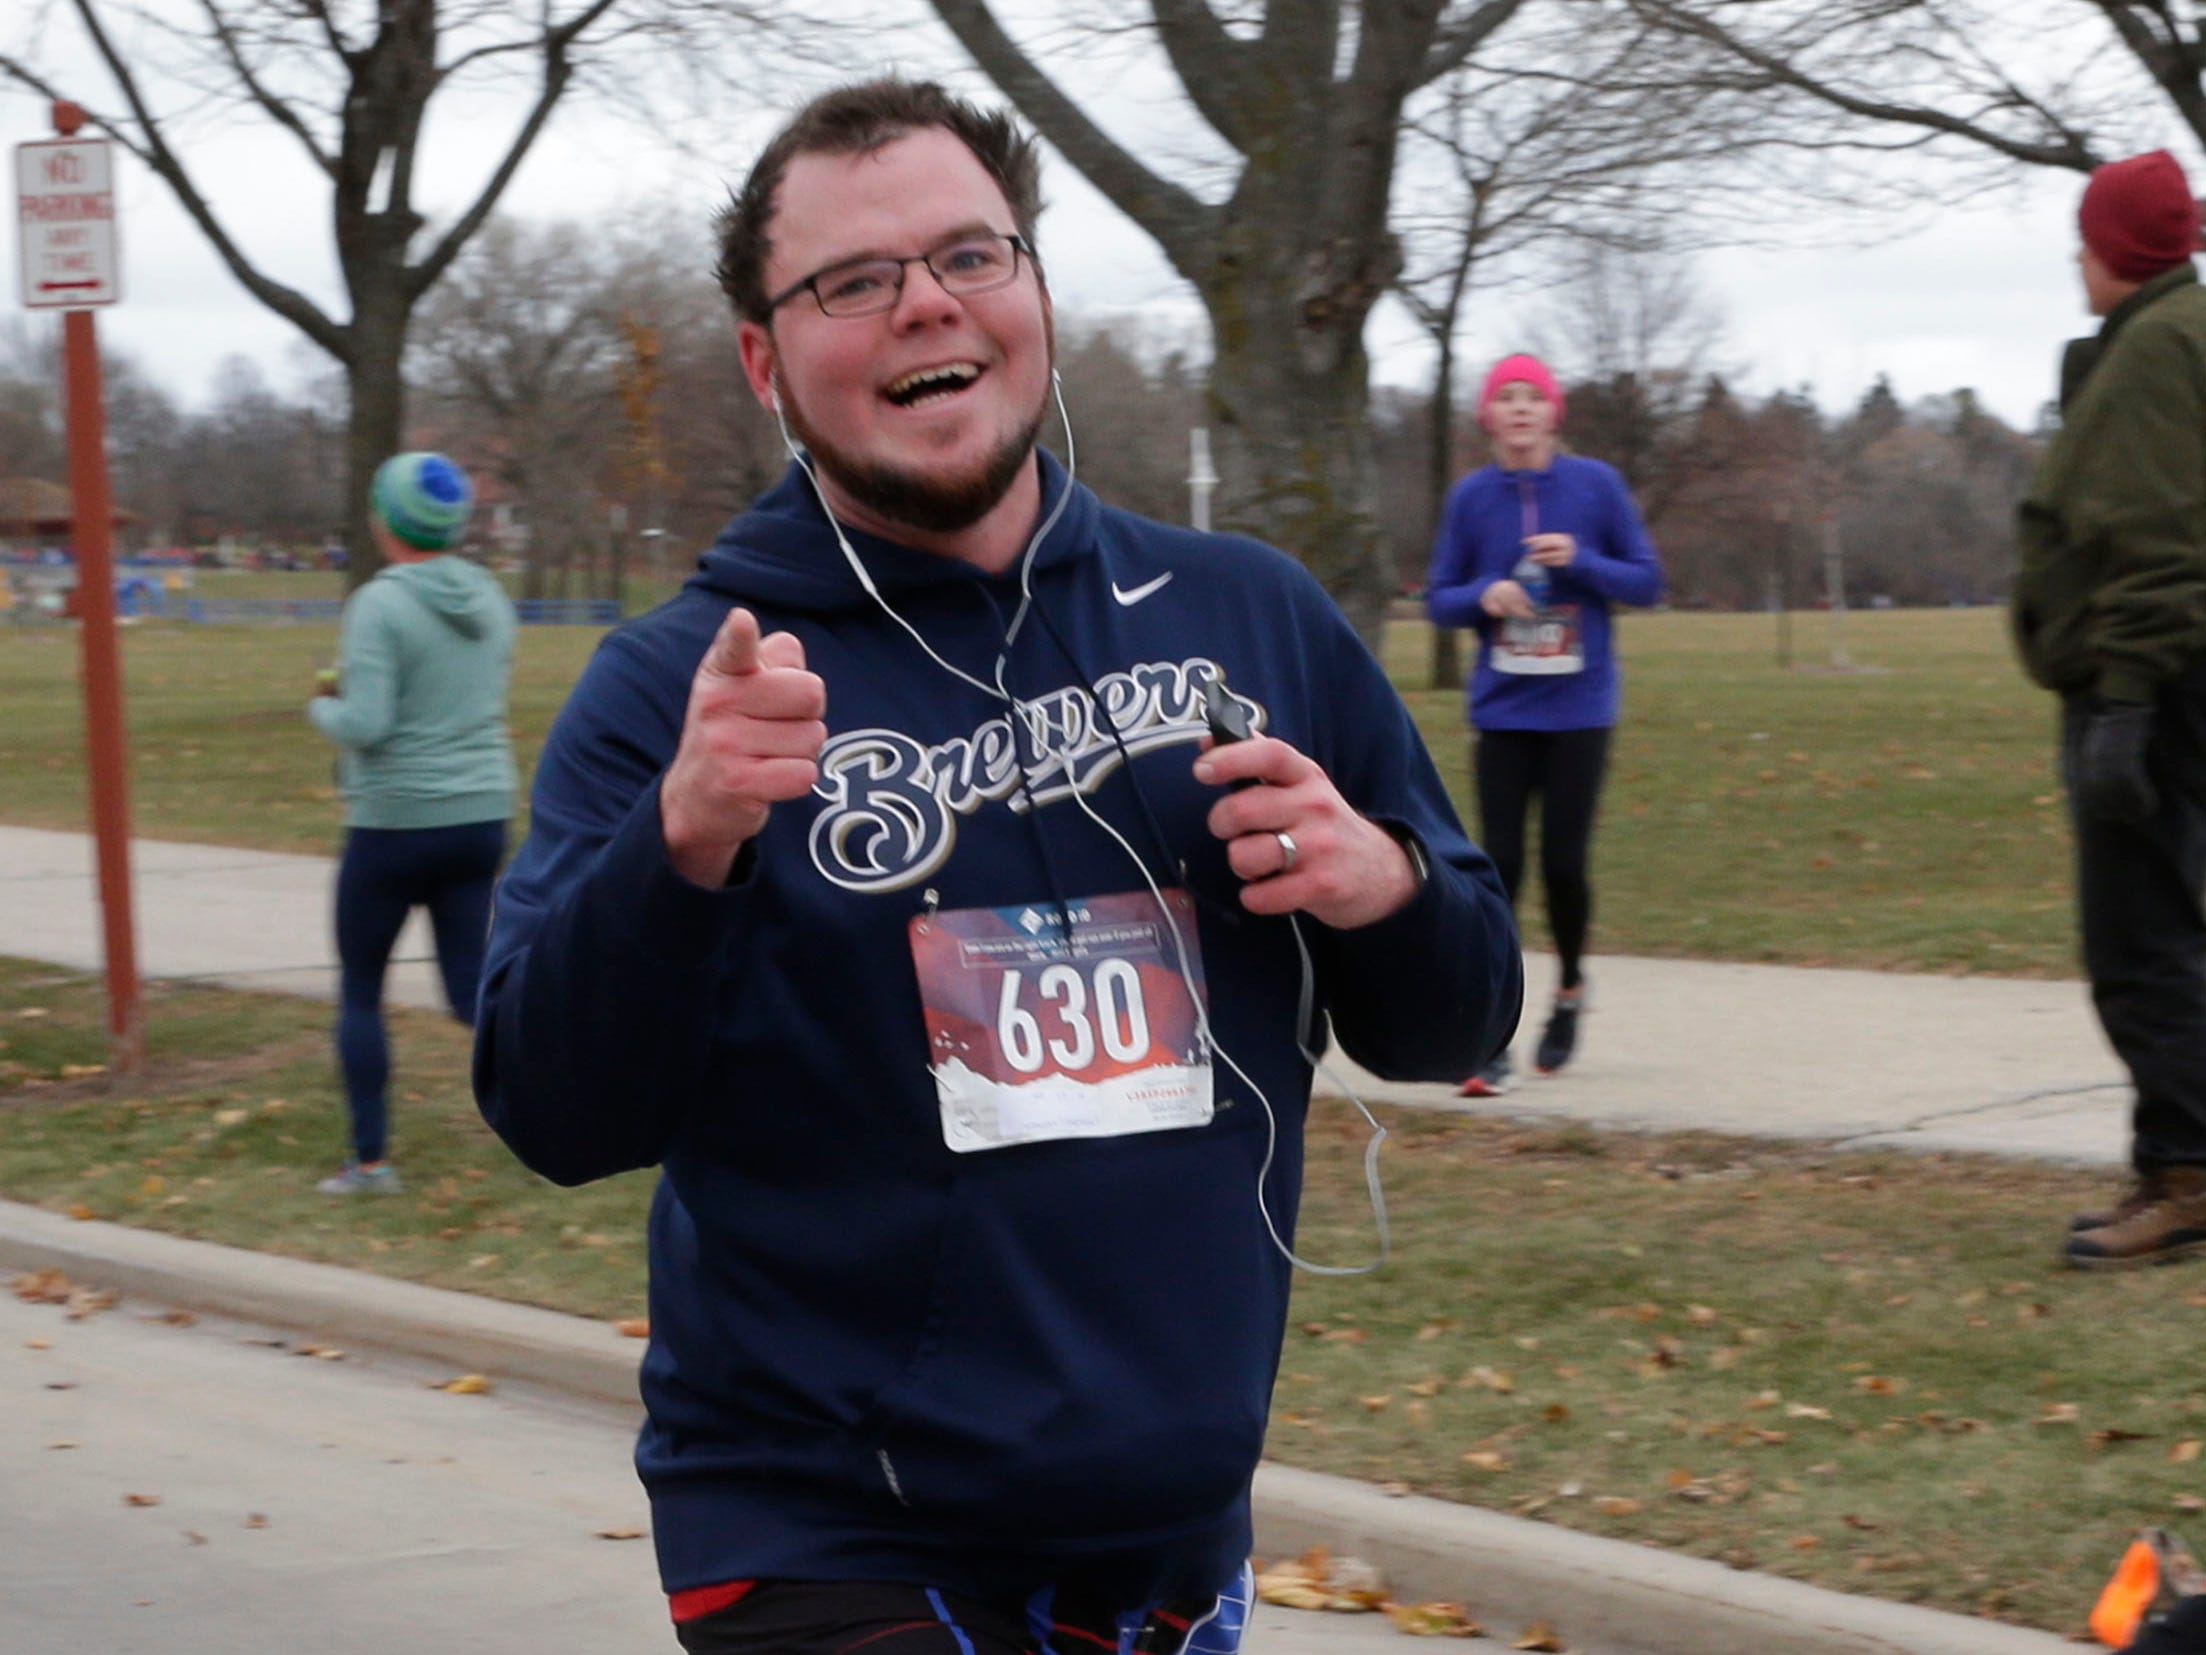 Nate Woefel reacts at the end of the Doug Opel Run for the Kids, Thursday, November 22, 2018, in Sheboygan, Wis.